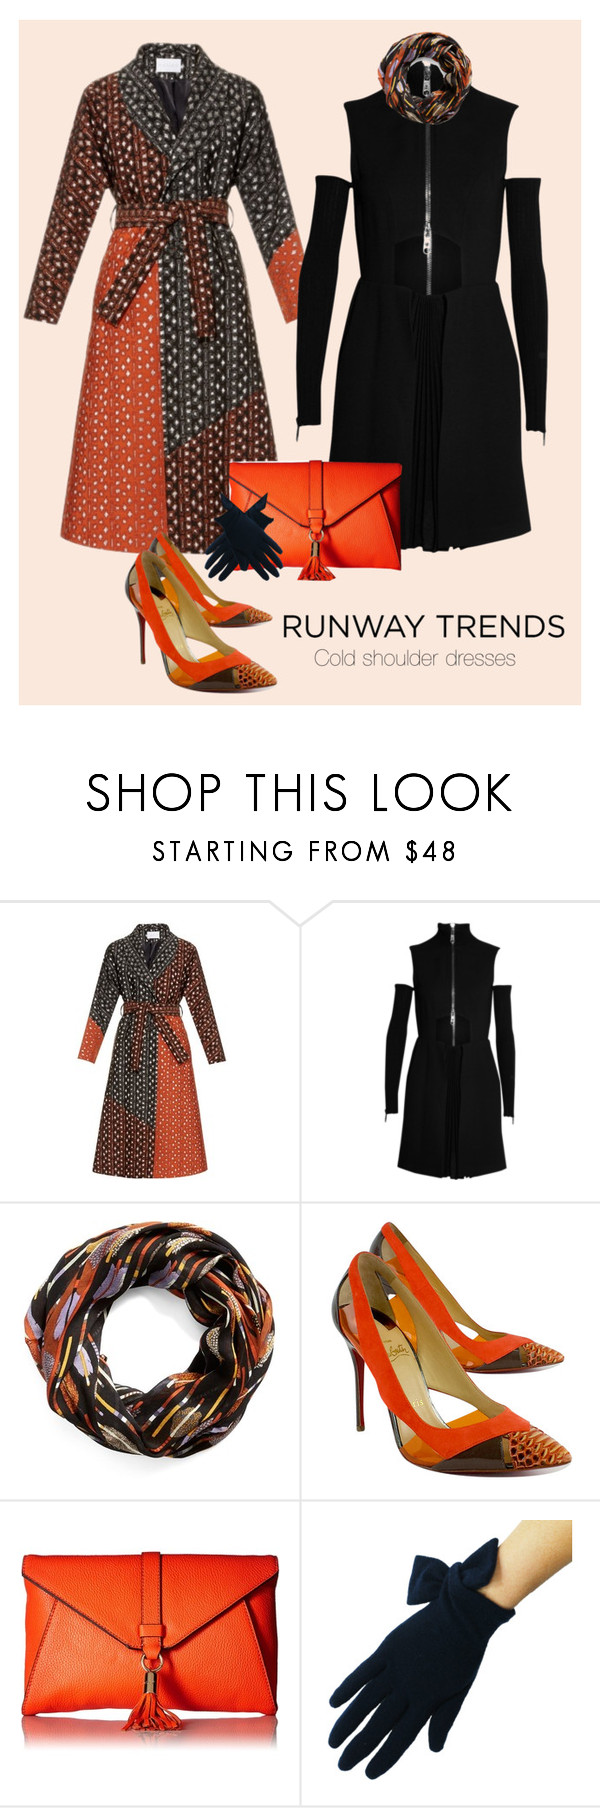 """You can run, but you can't hide"" by scope-stilettos ❤ liked on Polyvore featuring Osman, Versus, Vera Bradley, Christian Louboutin and Milly"